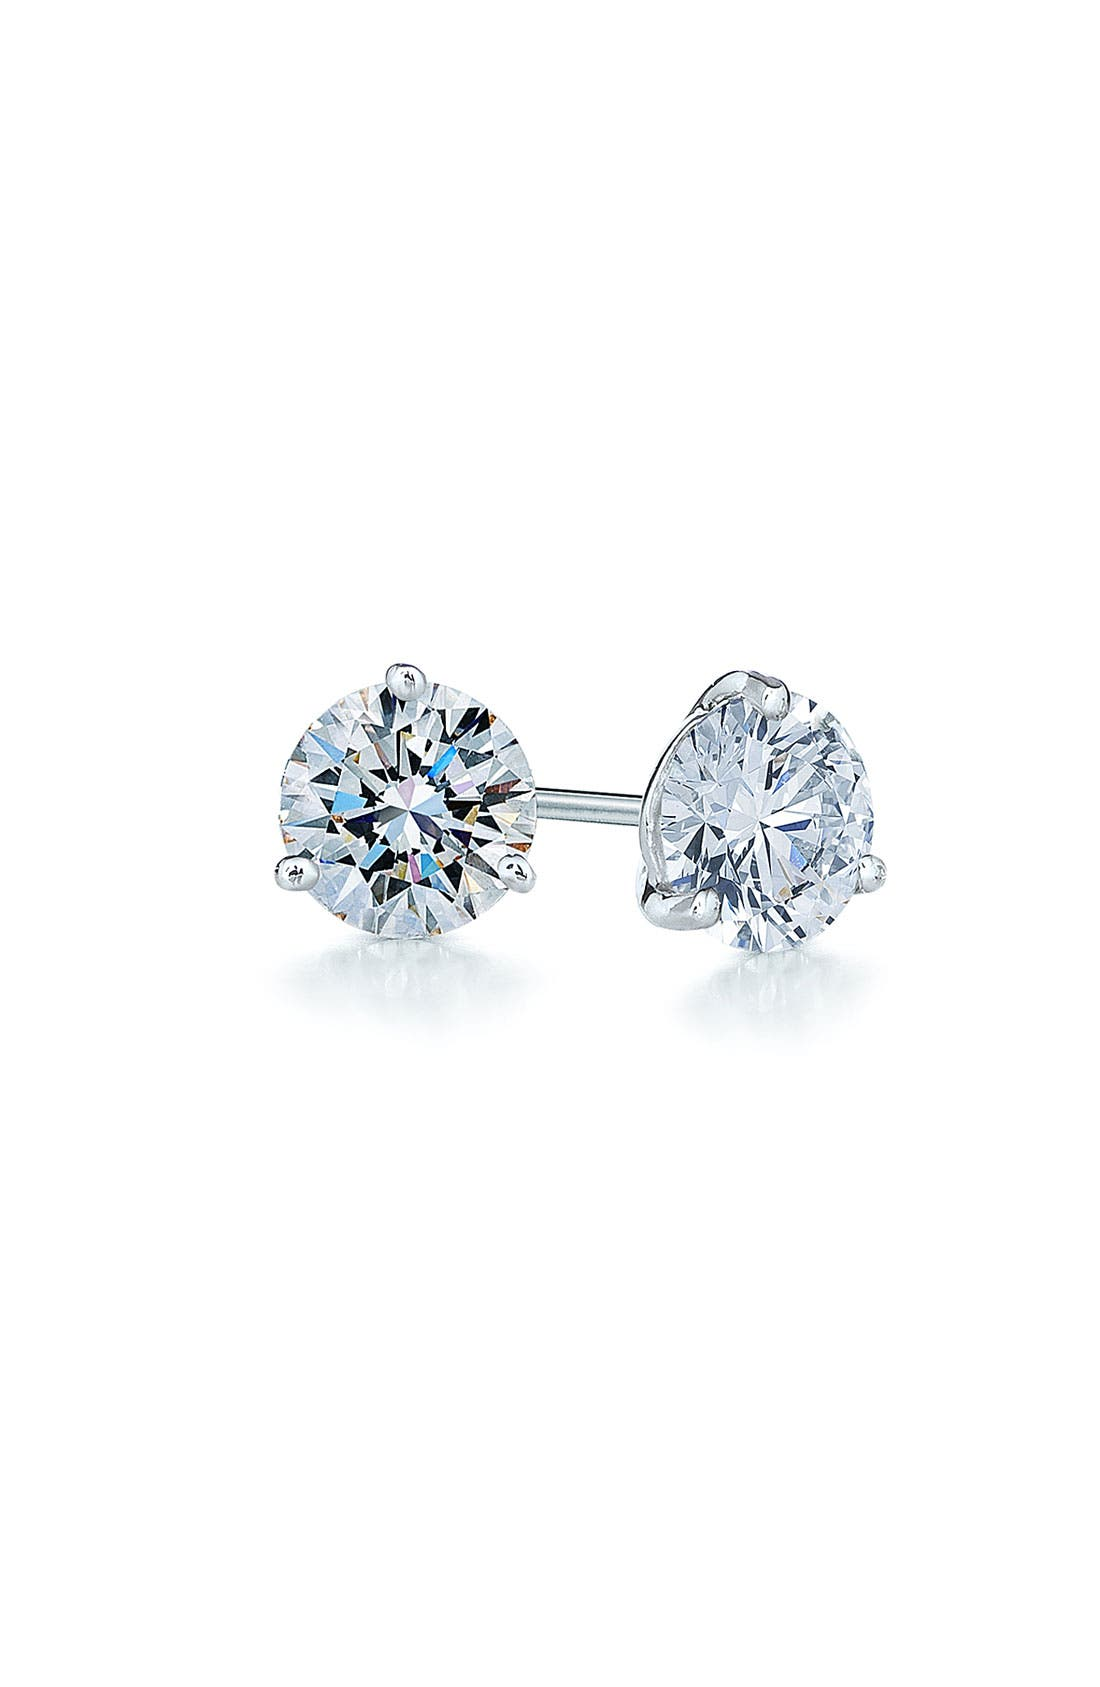 0.50ct tw Diamond & Platinum Stud Earrings,                             Main thumbnail 1, color,                             PLATINUM